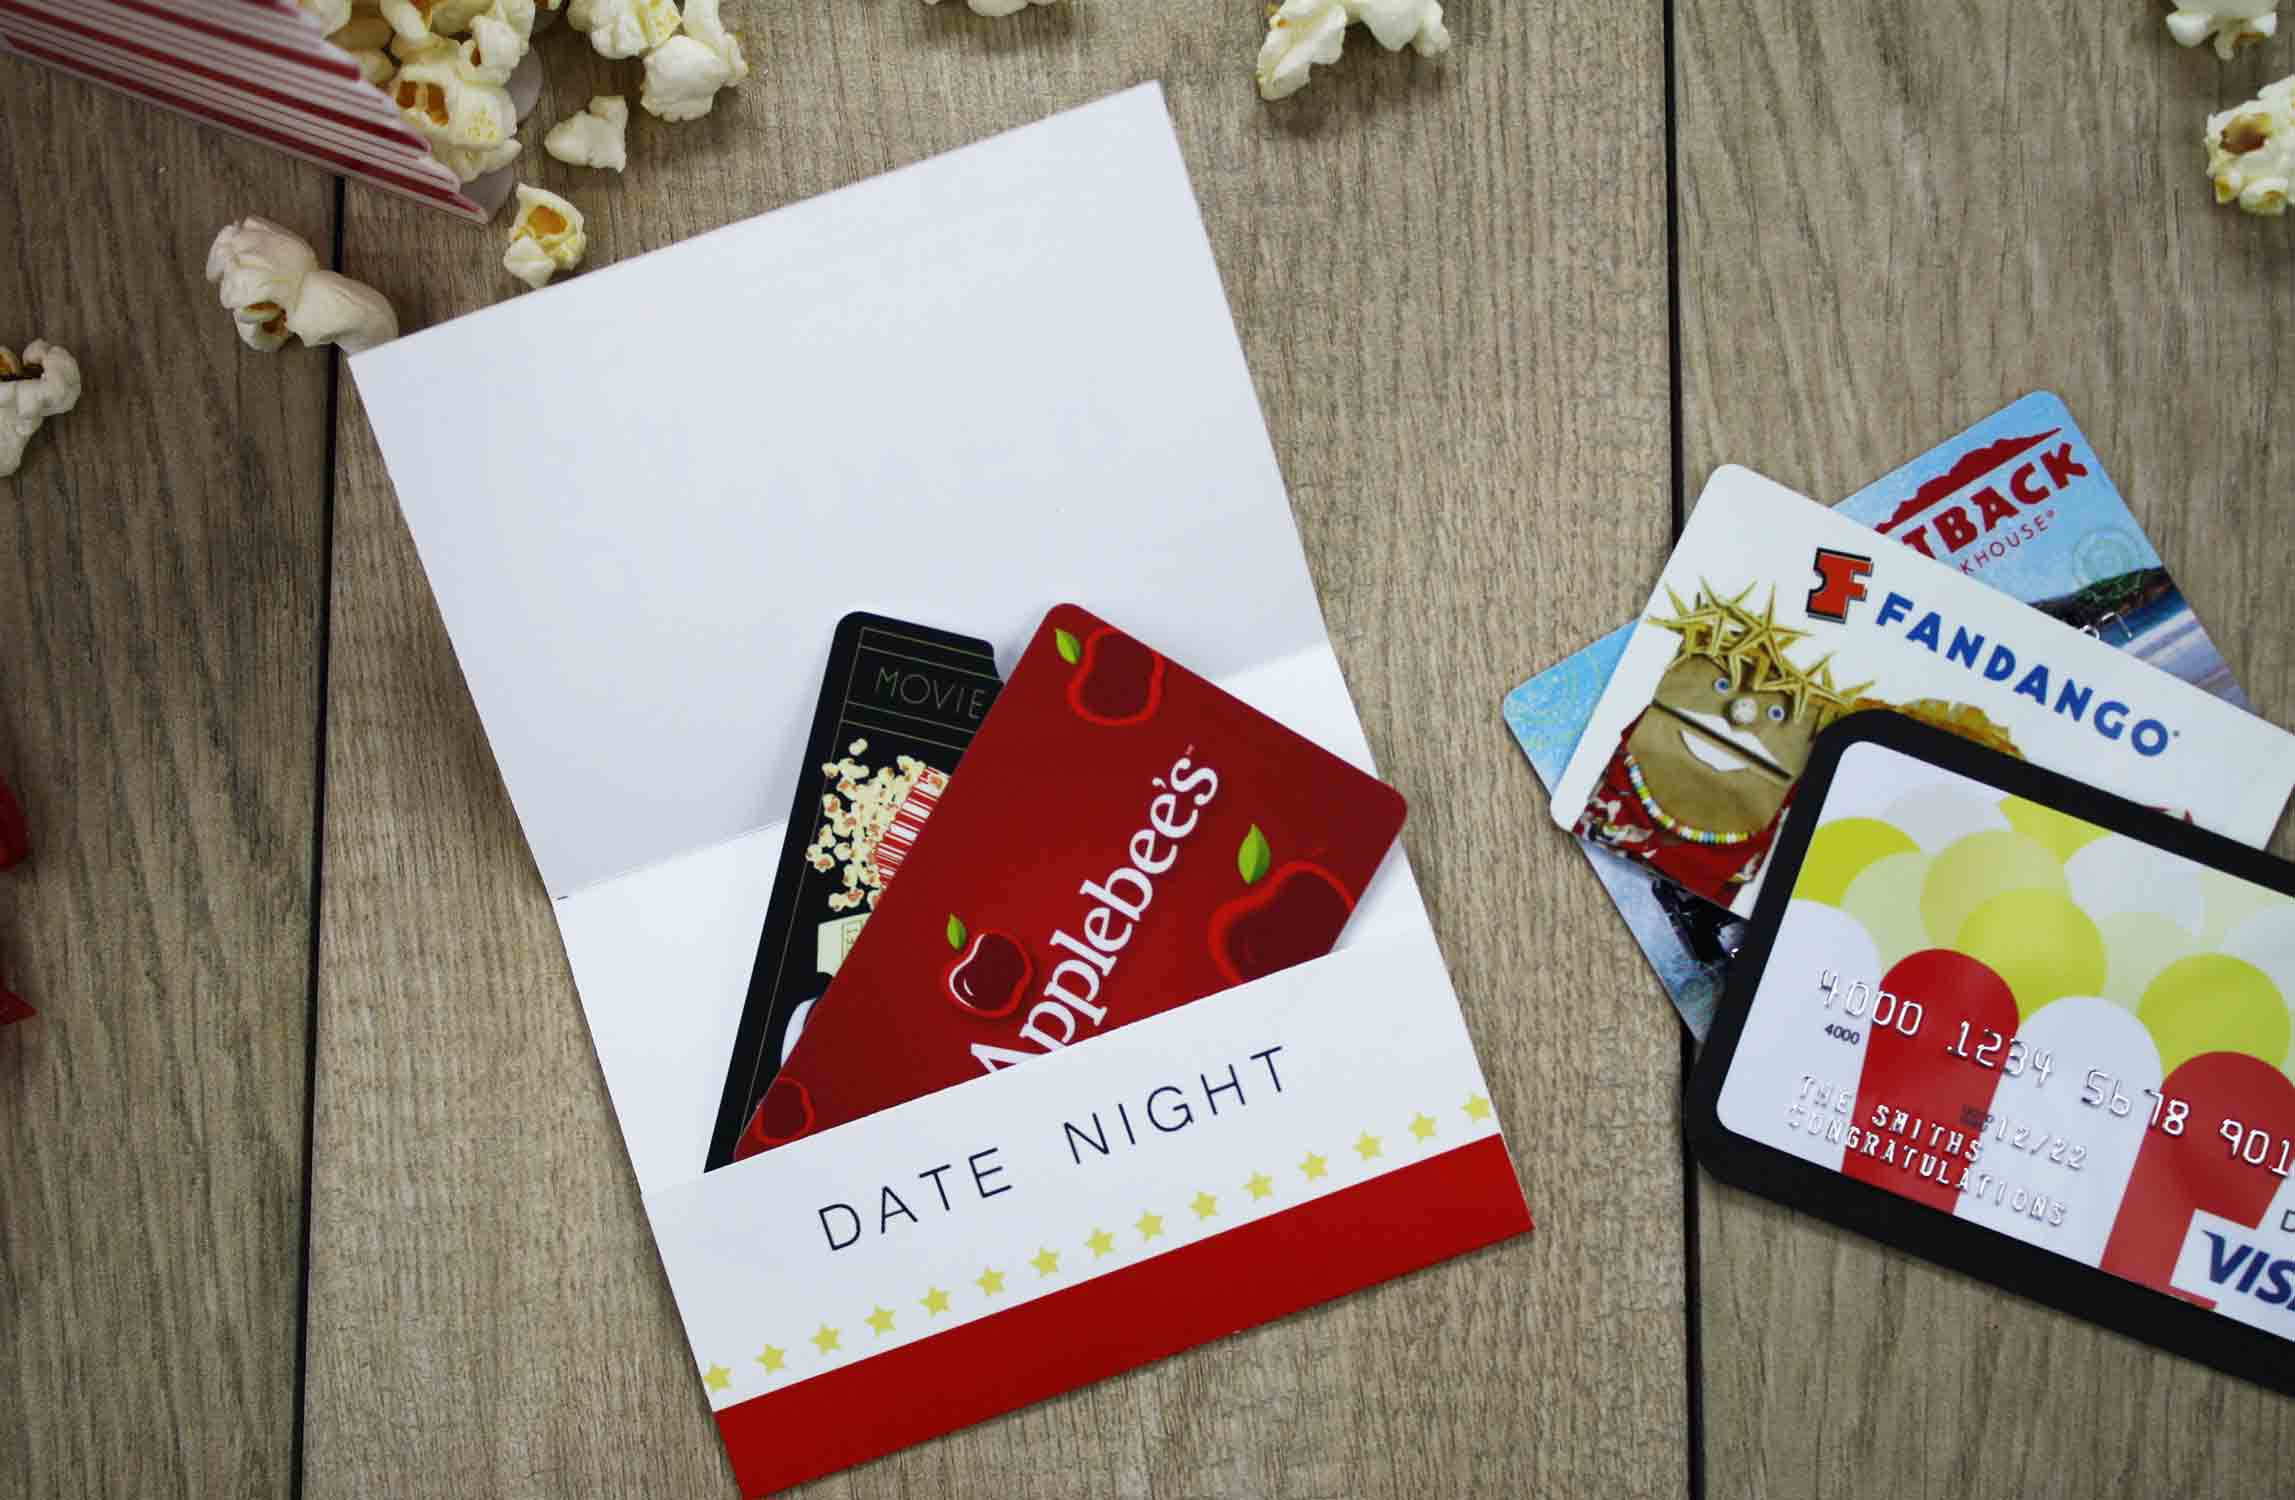 A Wedding Gift Movie : Free Printable} Give DATE NIGHT for a Wedding Gift GCG